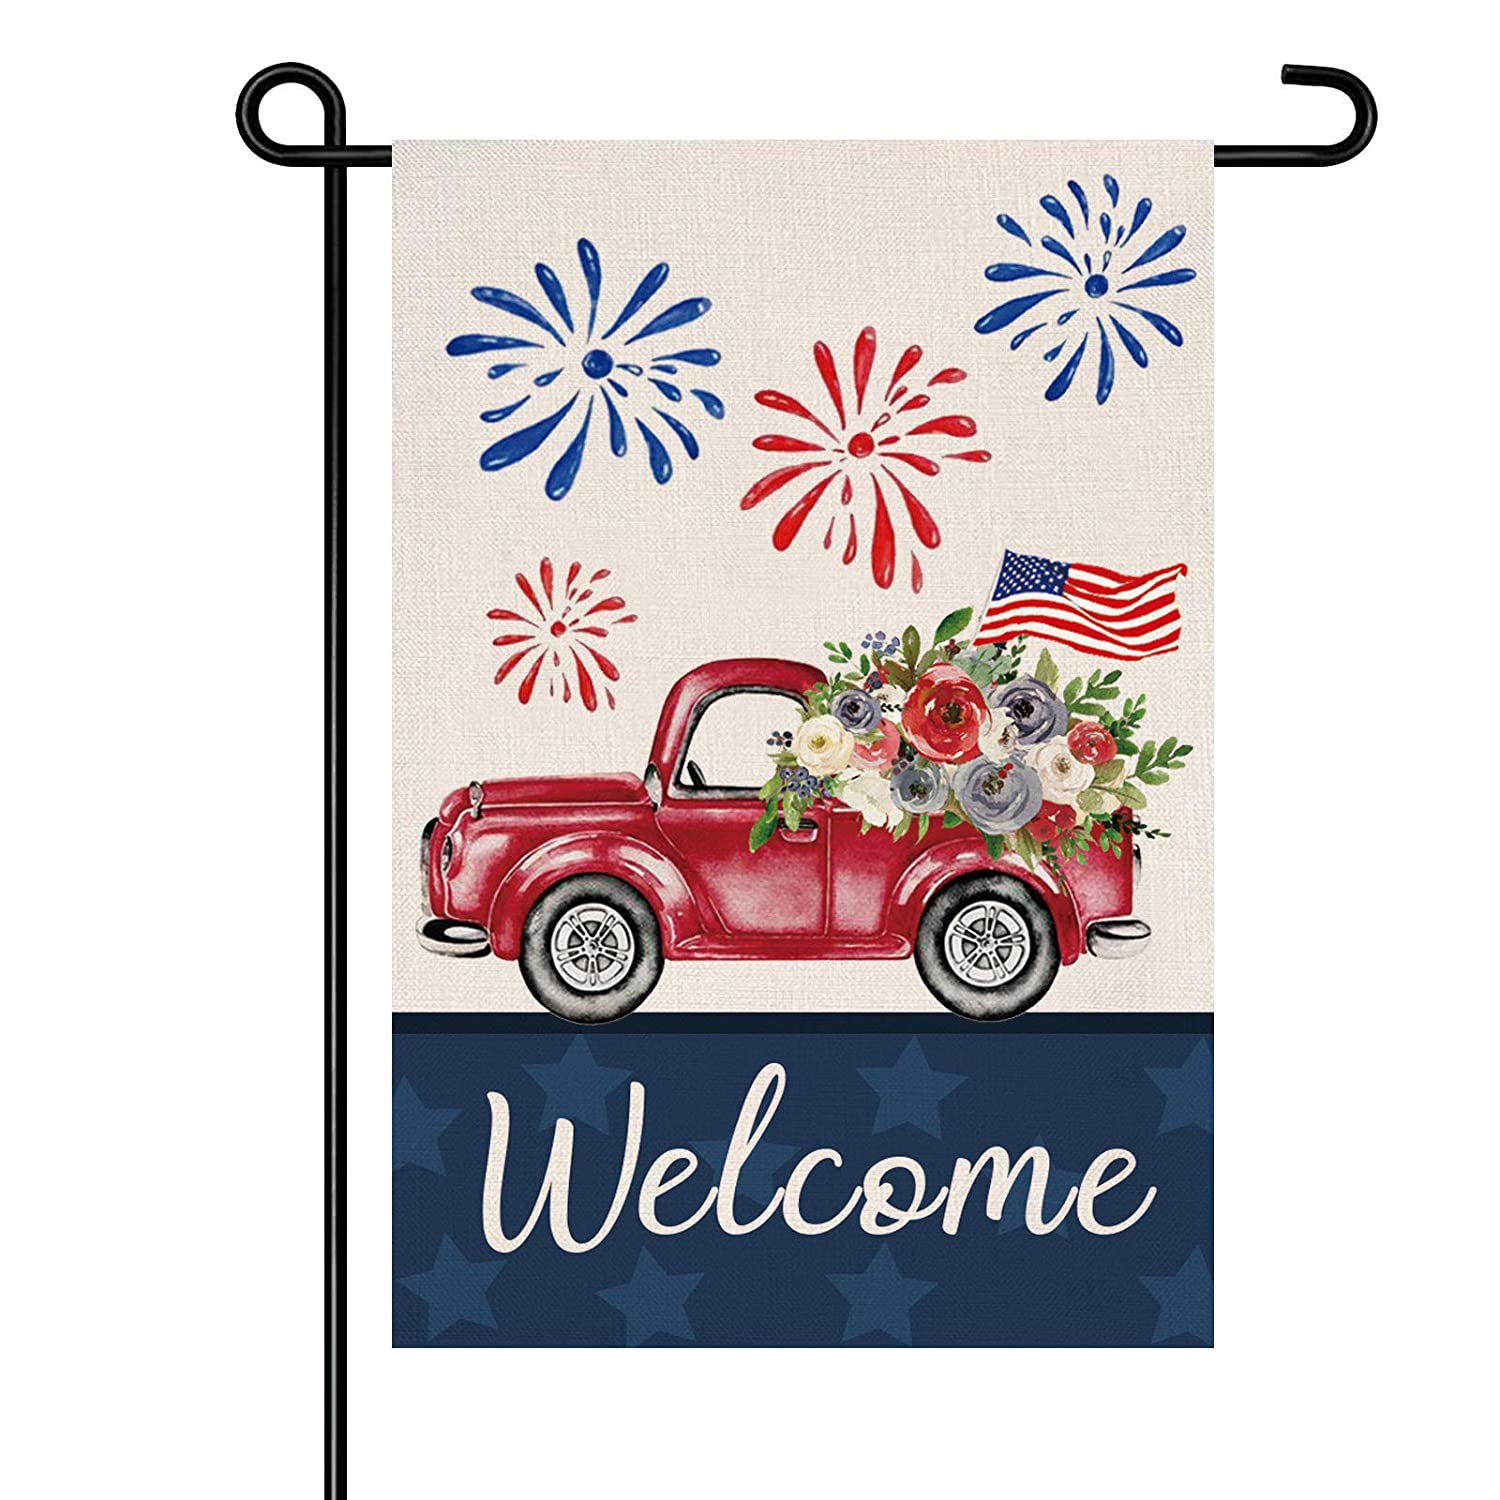 4th of July Garden Flag,Memorial Day Welcome Patriotic Garden Flag,12x18 Inch Double Sided Waterproof Patriotic Flag for Yard Outdoor Decoration